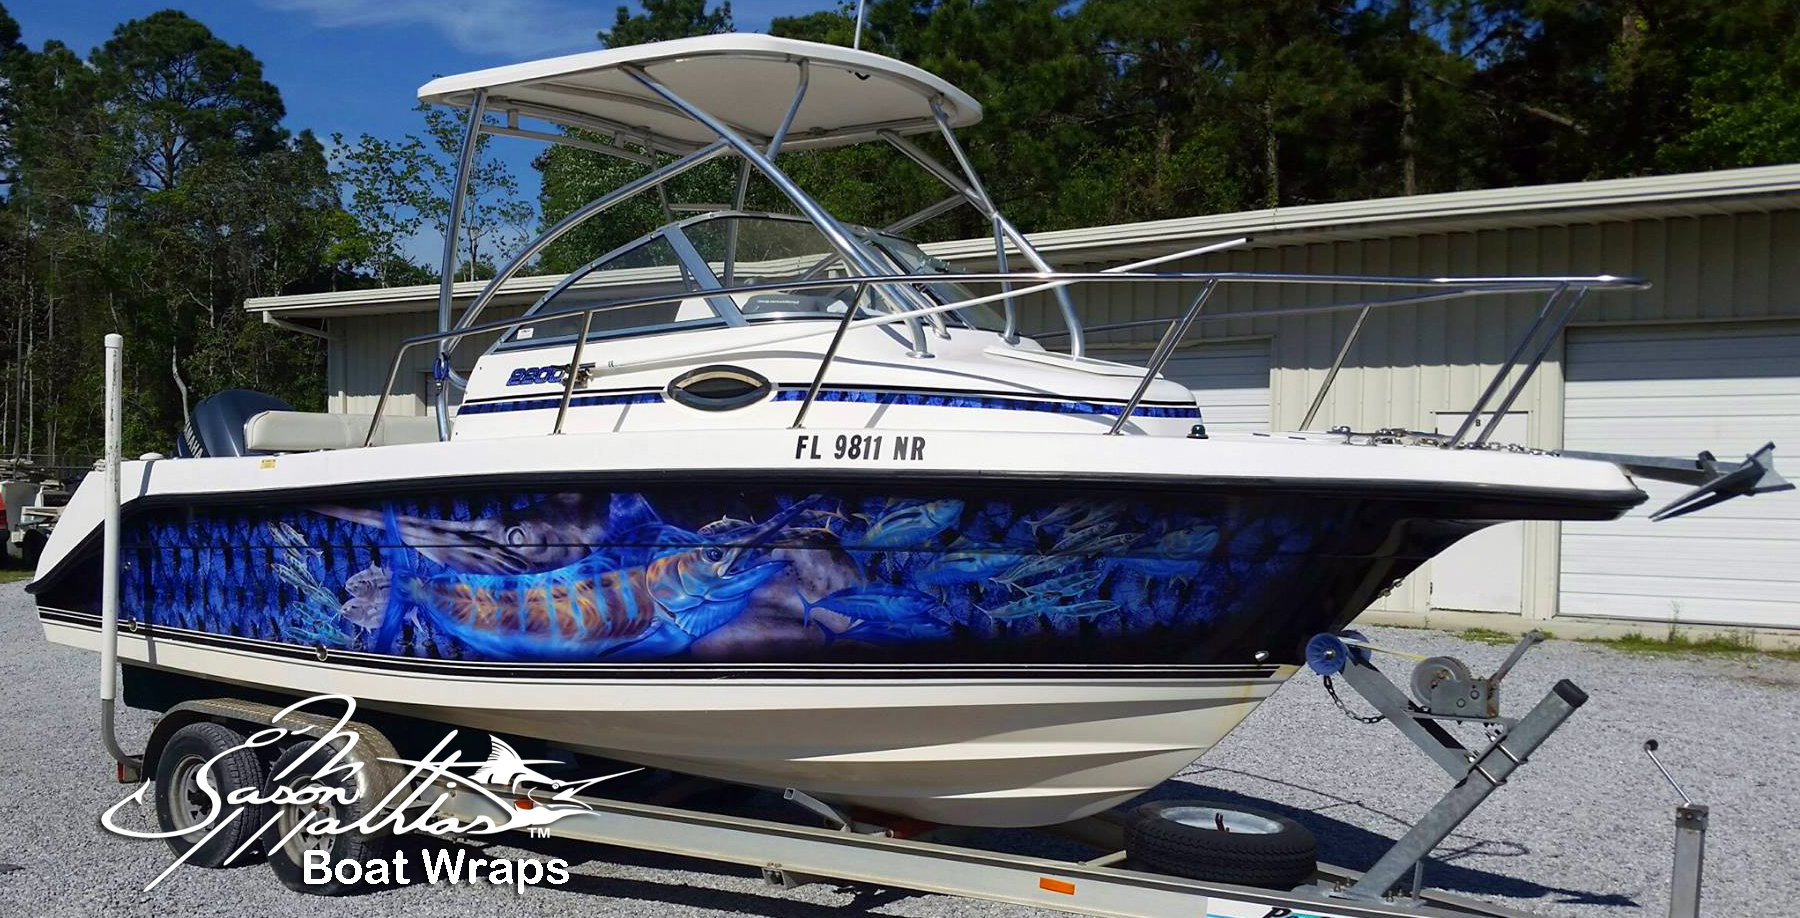 boat graphics designs ideas home design ideas - Boat Graphics Designs Ideas